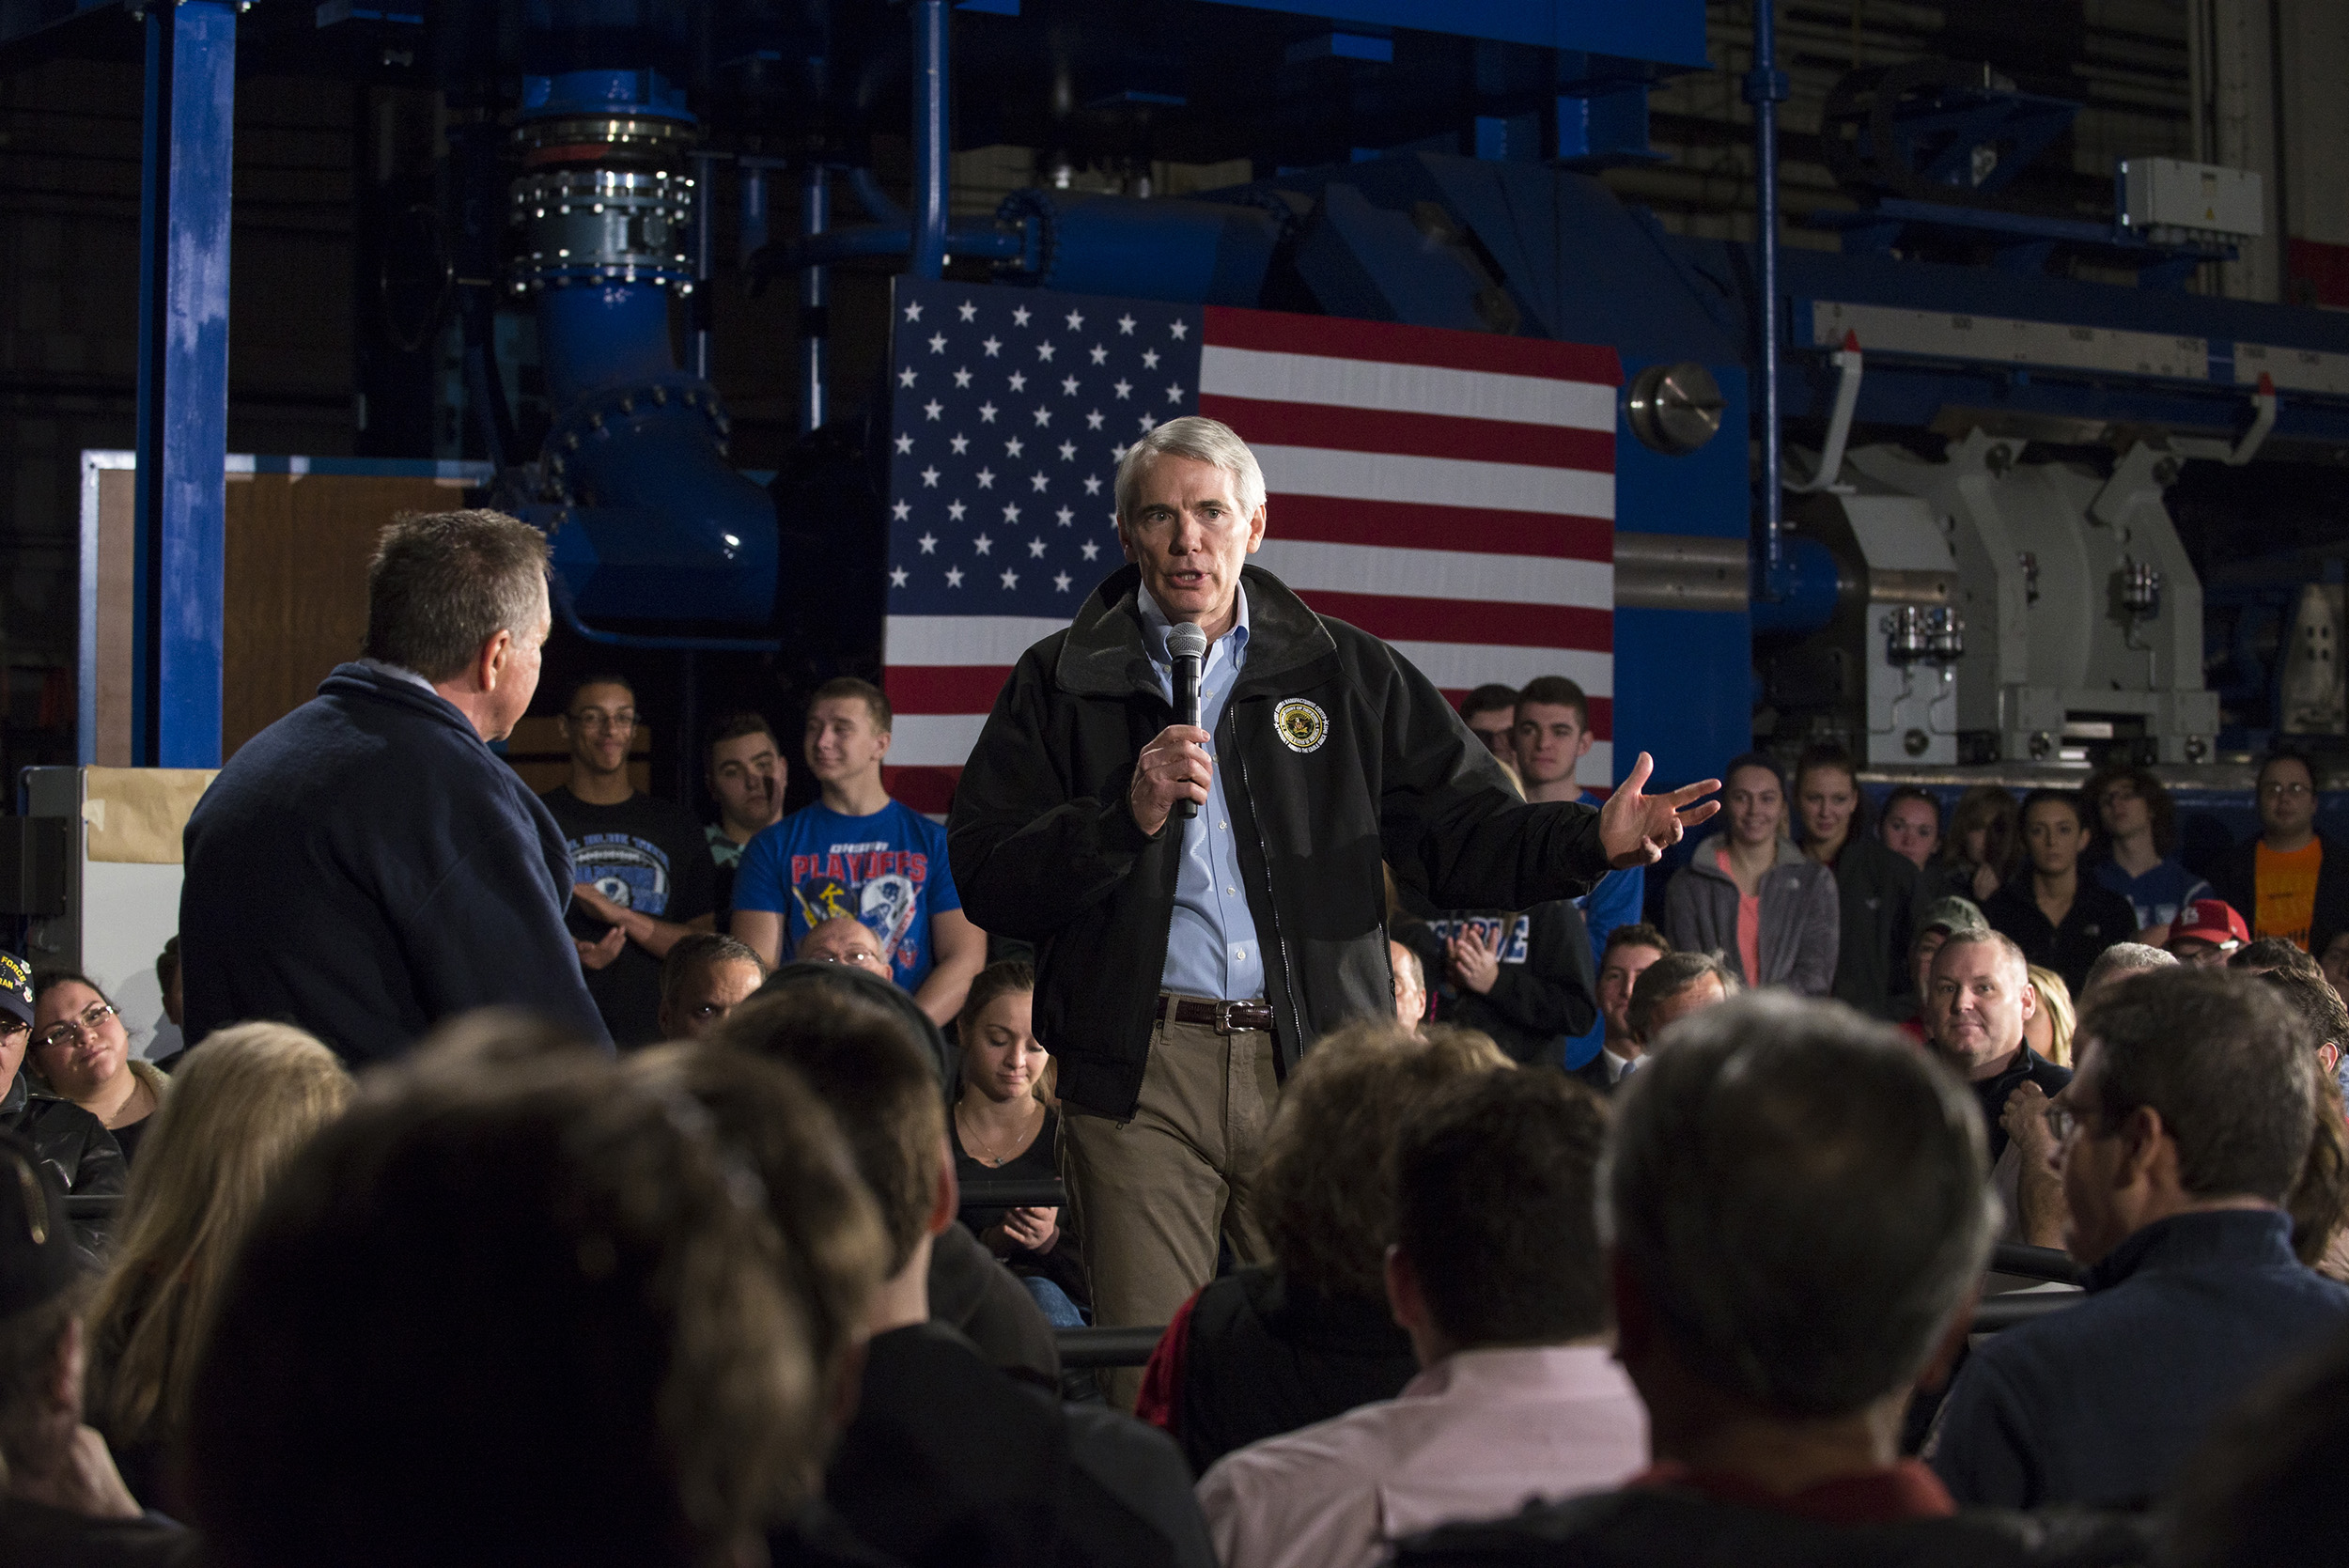 Ohio Senator Rob Portman speaks to supporters at a town hall meeting  in Youngstown, Ohio on March 14, 2016.